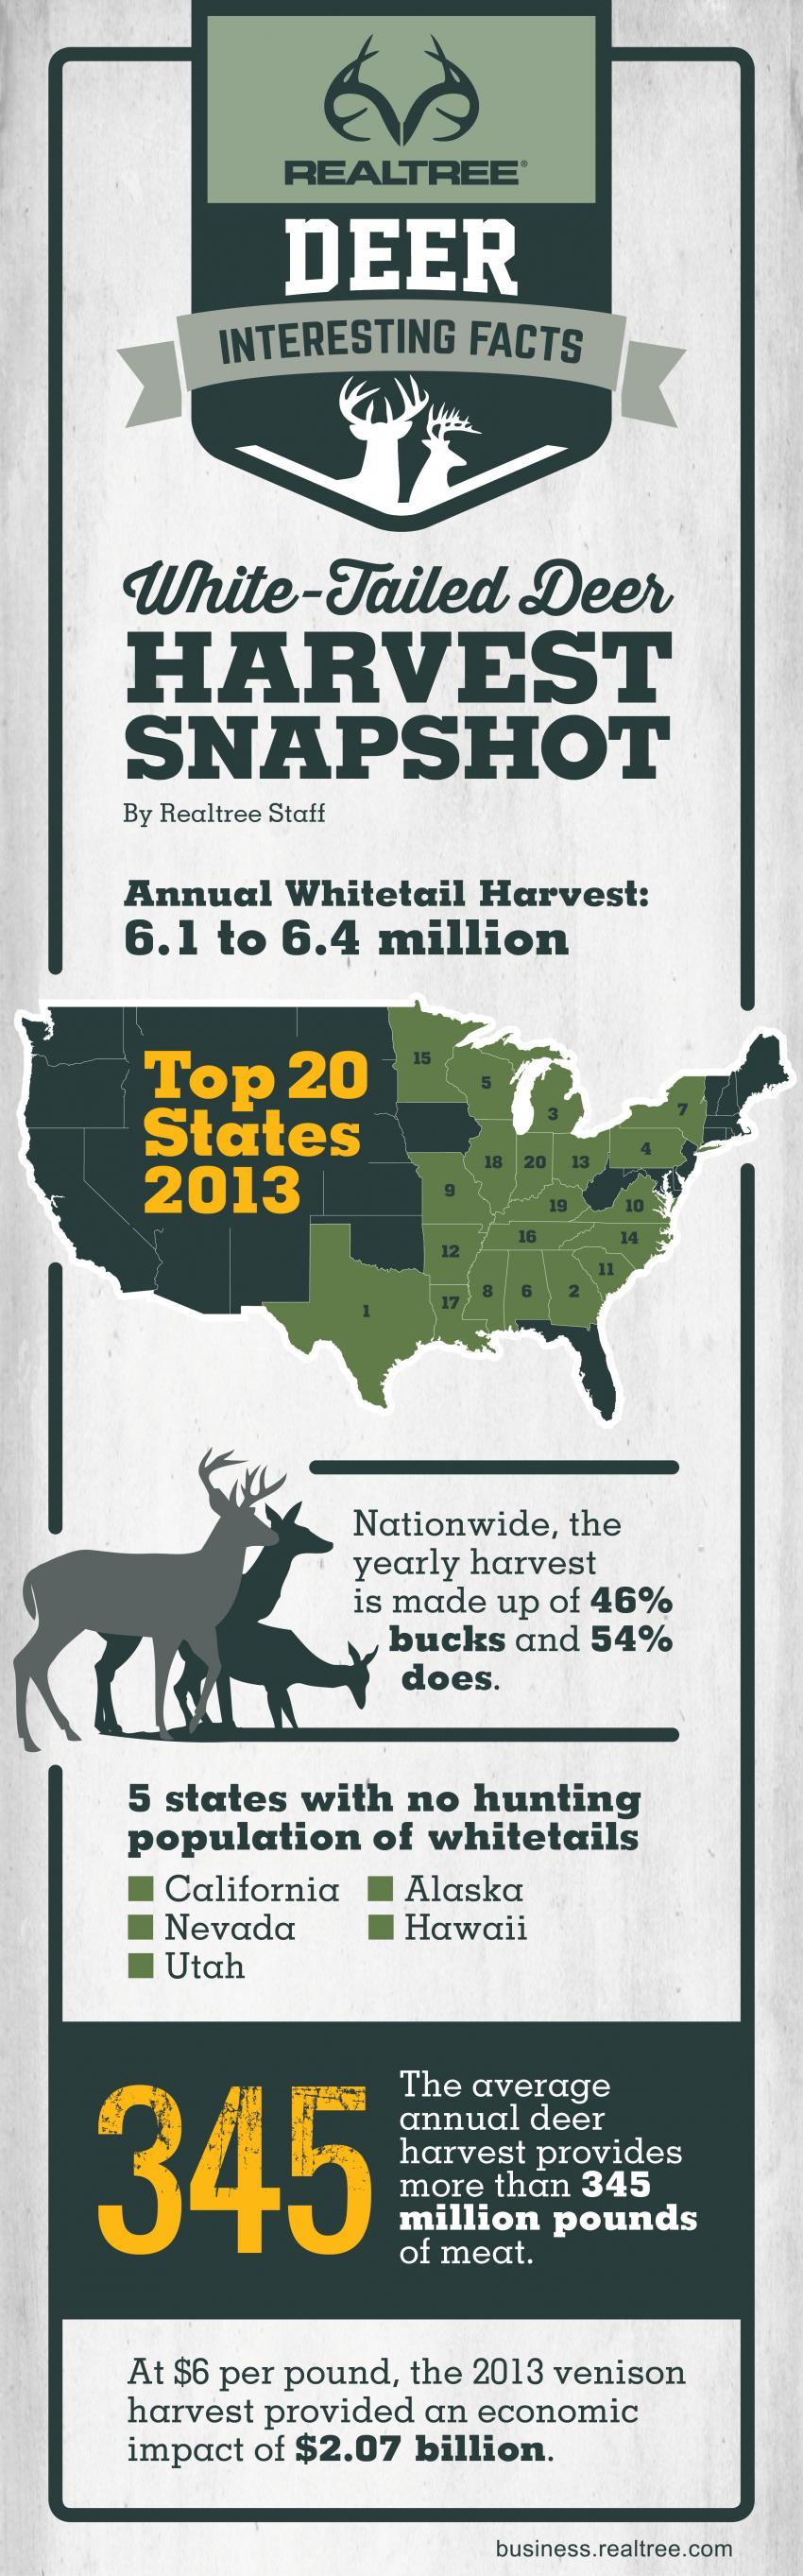 Whitetail Deer Harvest Infographic 2016 | Realtree B2B